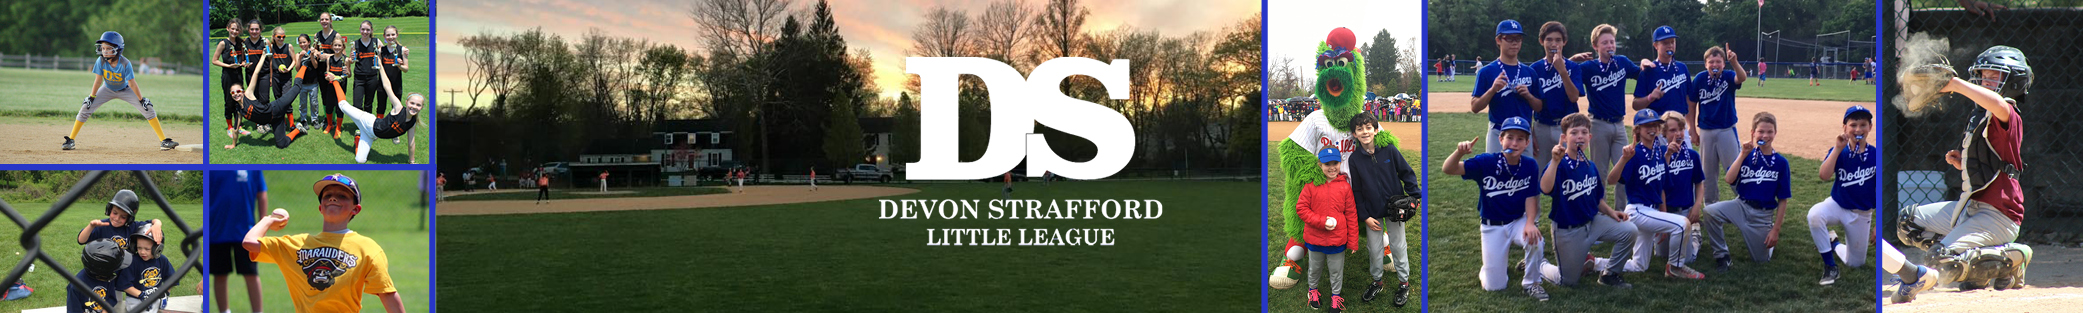 Devon Strafford Little League, Baseball & Softball, Run, Field